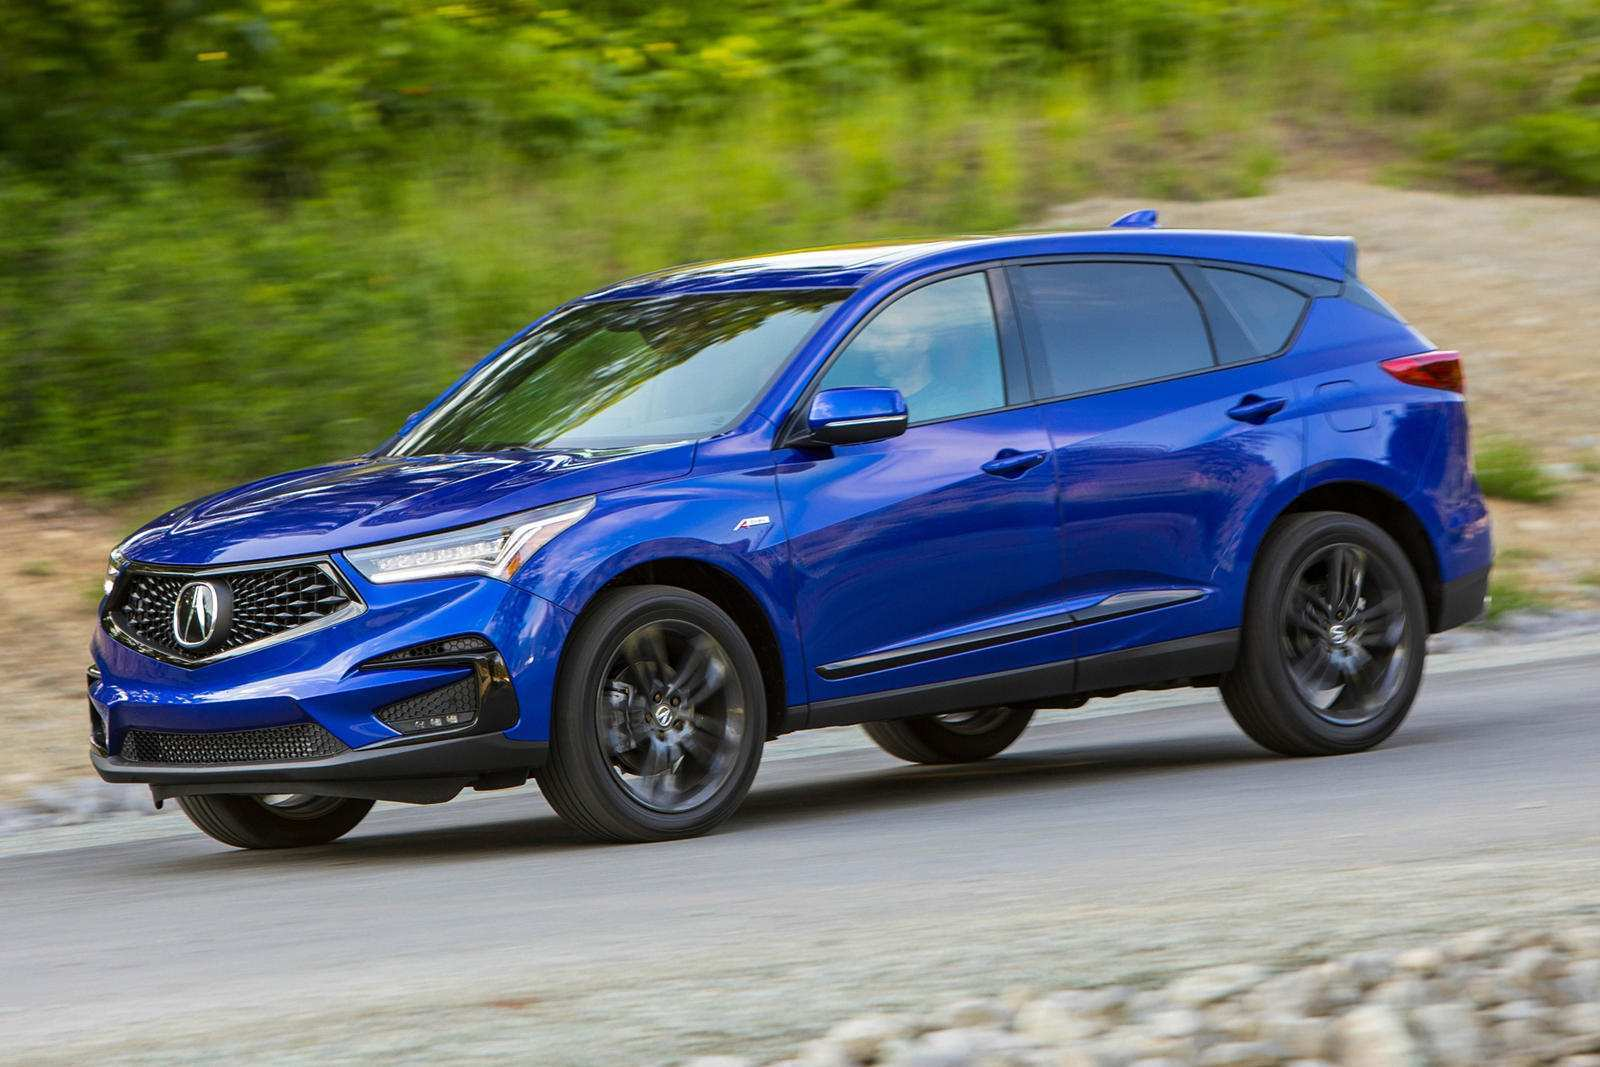 93 All New Acura Suv 2020 Price And Release Date